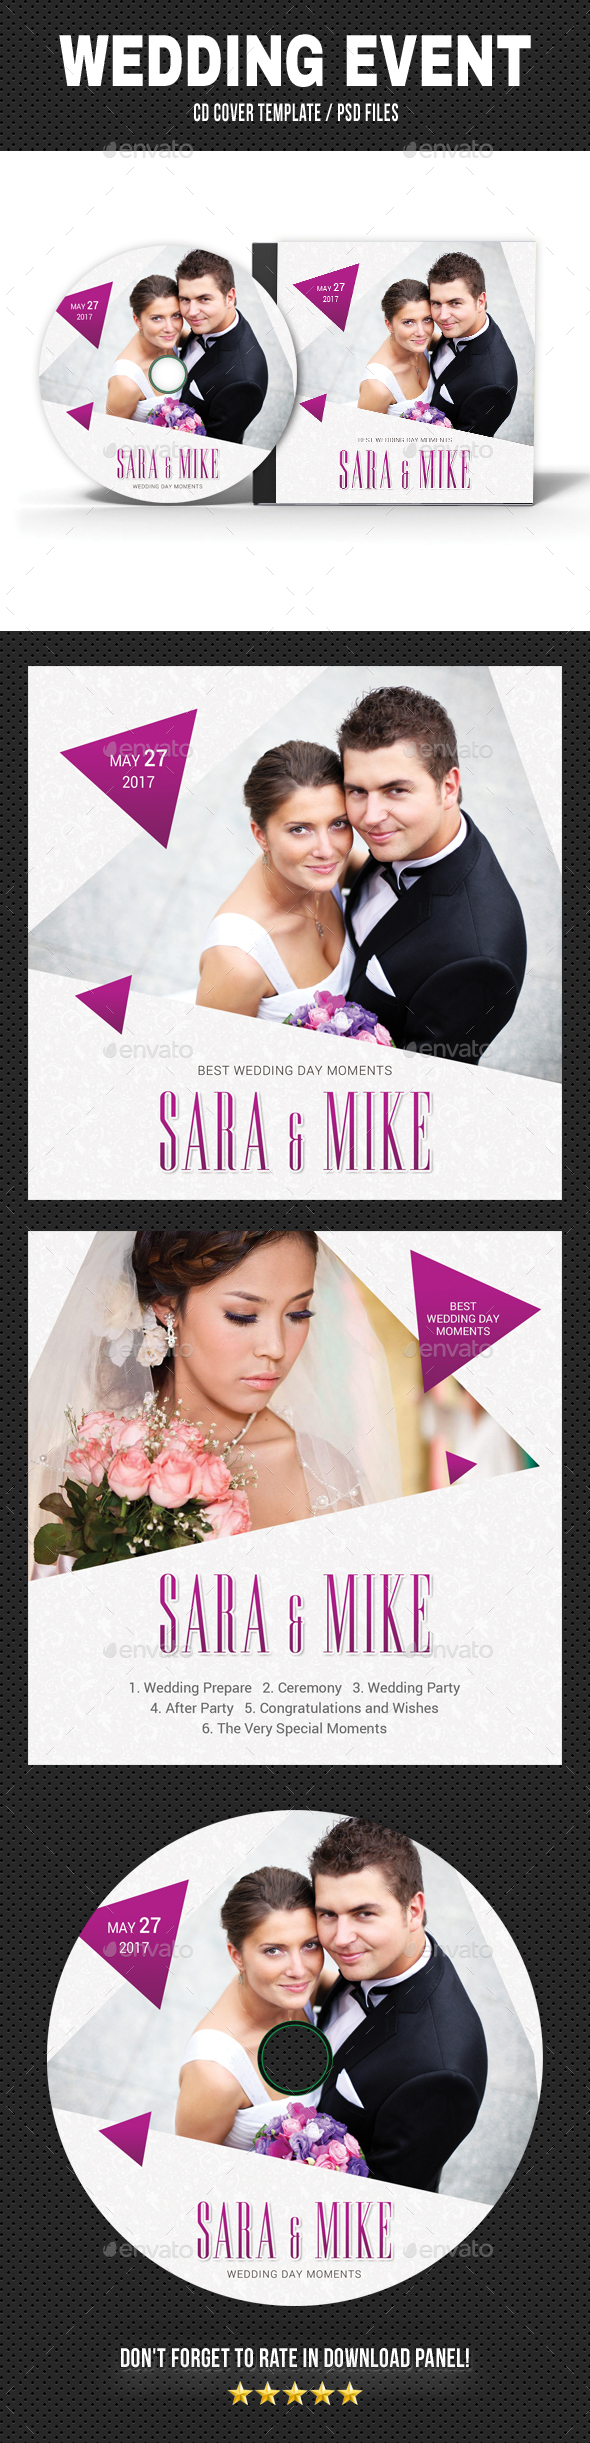 Wedding Event CD Cover v19